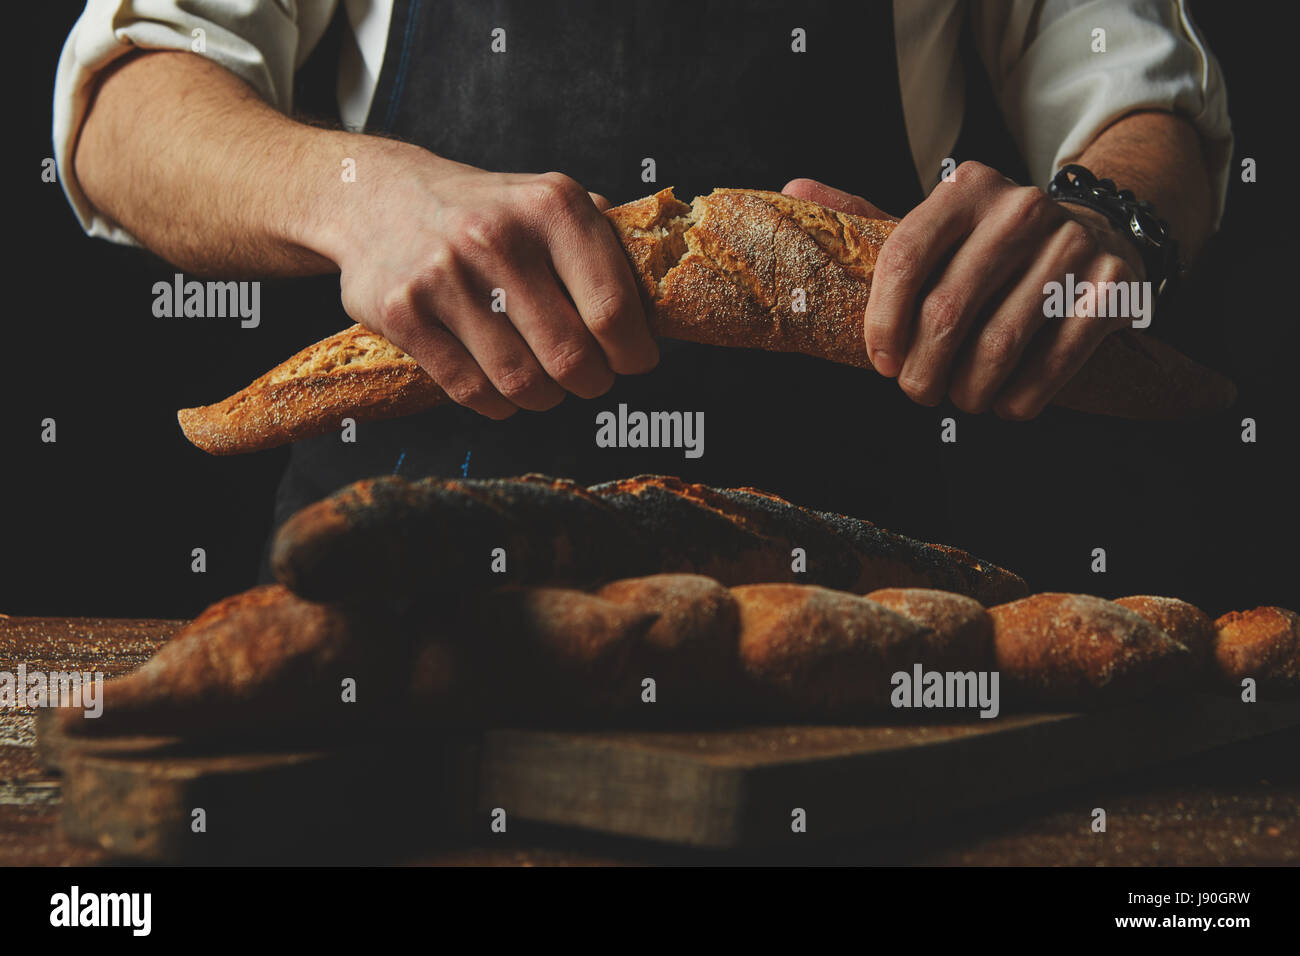 Baker's hands break the baguette Stock Photo